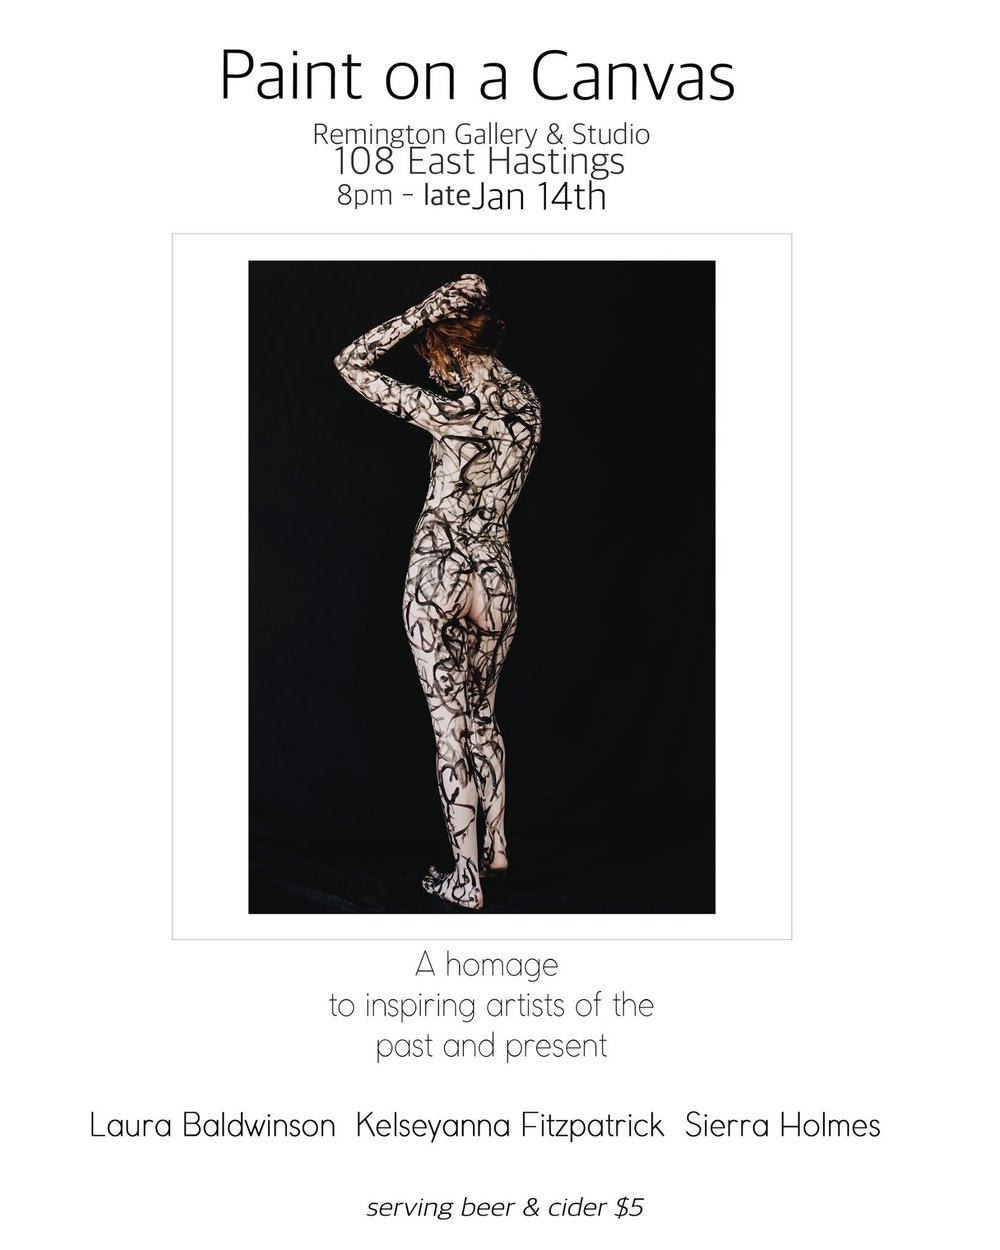 If you're in Vancouver this weekend you can't miss this show. For almost a year, photographer Laura Baldwinson and makeup artist Kelseyanna Fitzpatrick, have been working on this series, combining their immeasurable talents to create what is sure to be a spectacular body of work. We'll see you there!